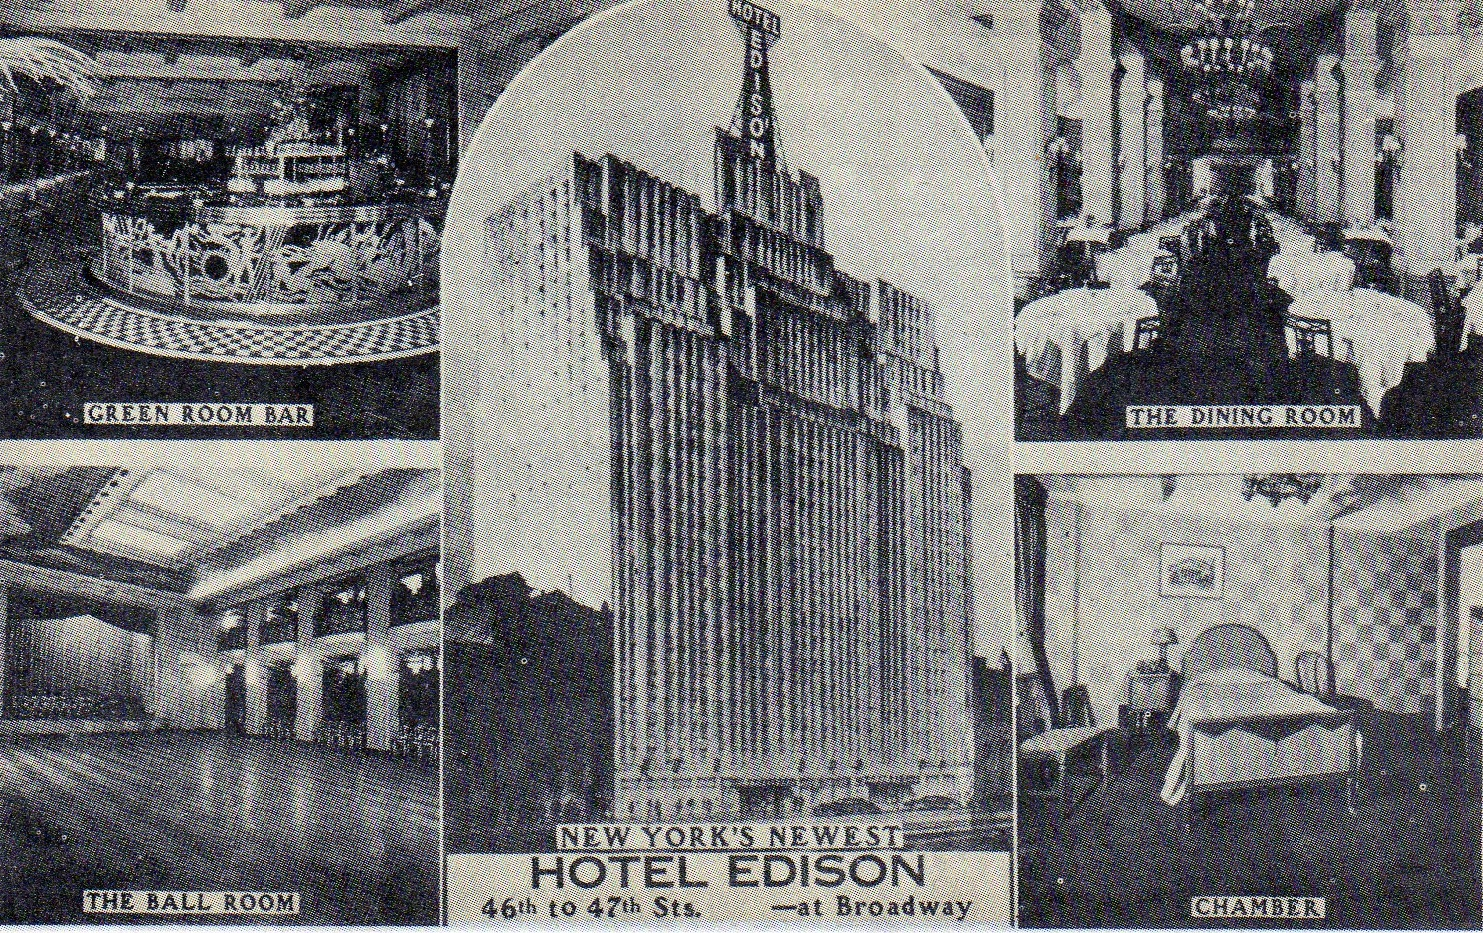 Vintage Postcard of the Hotel Edison